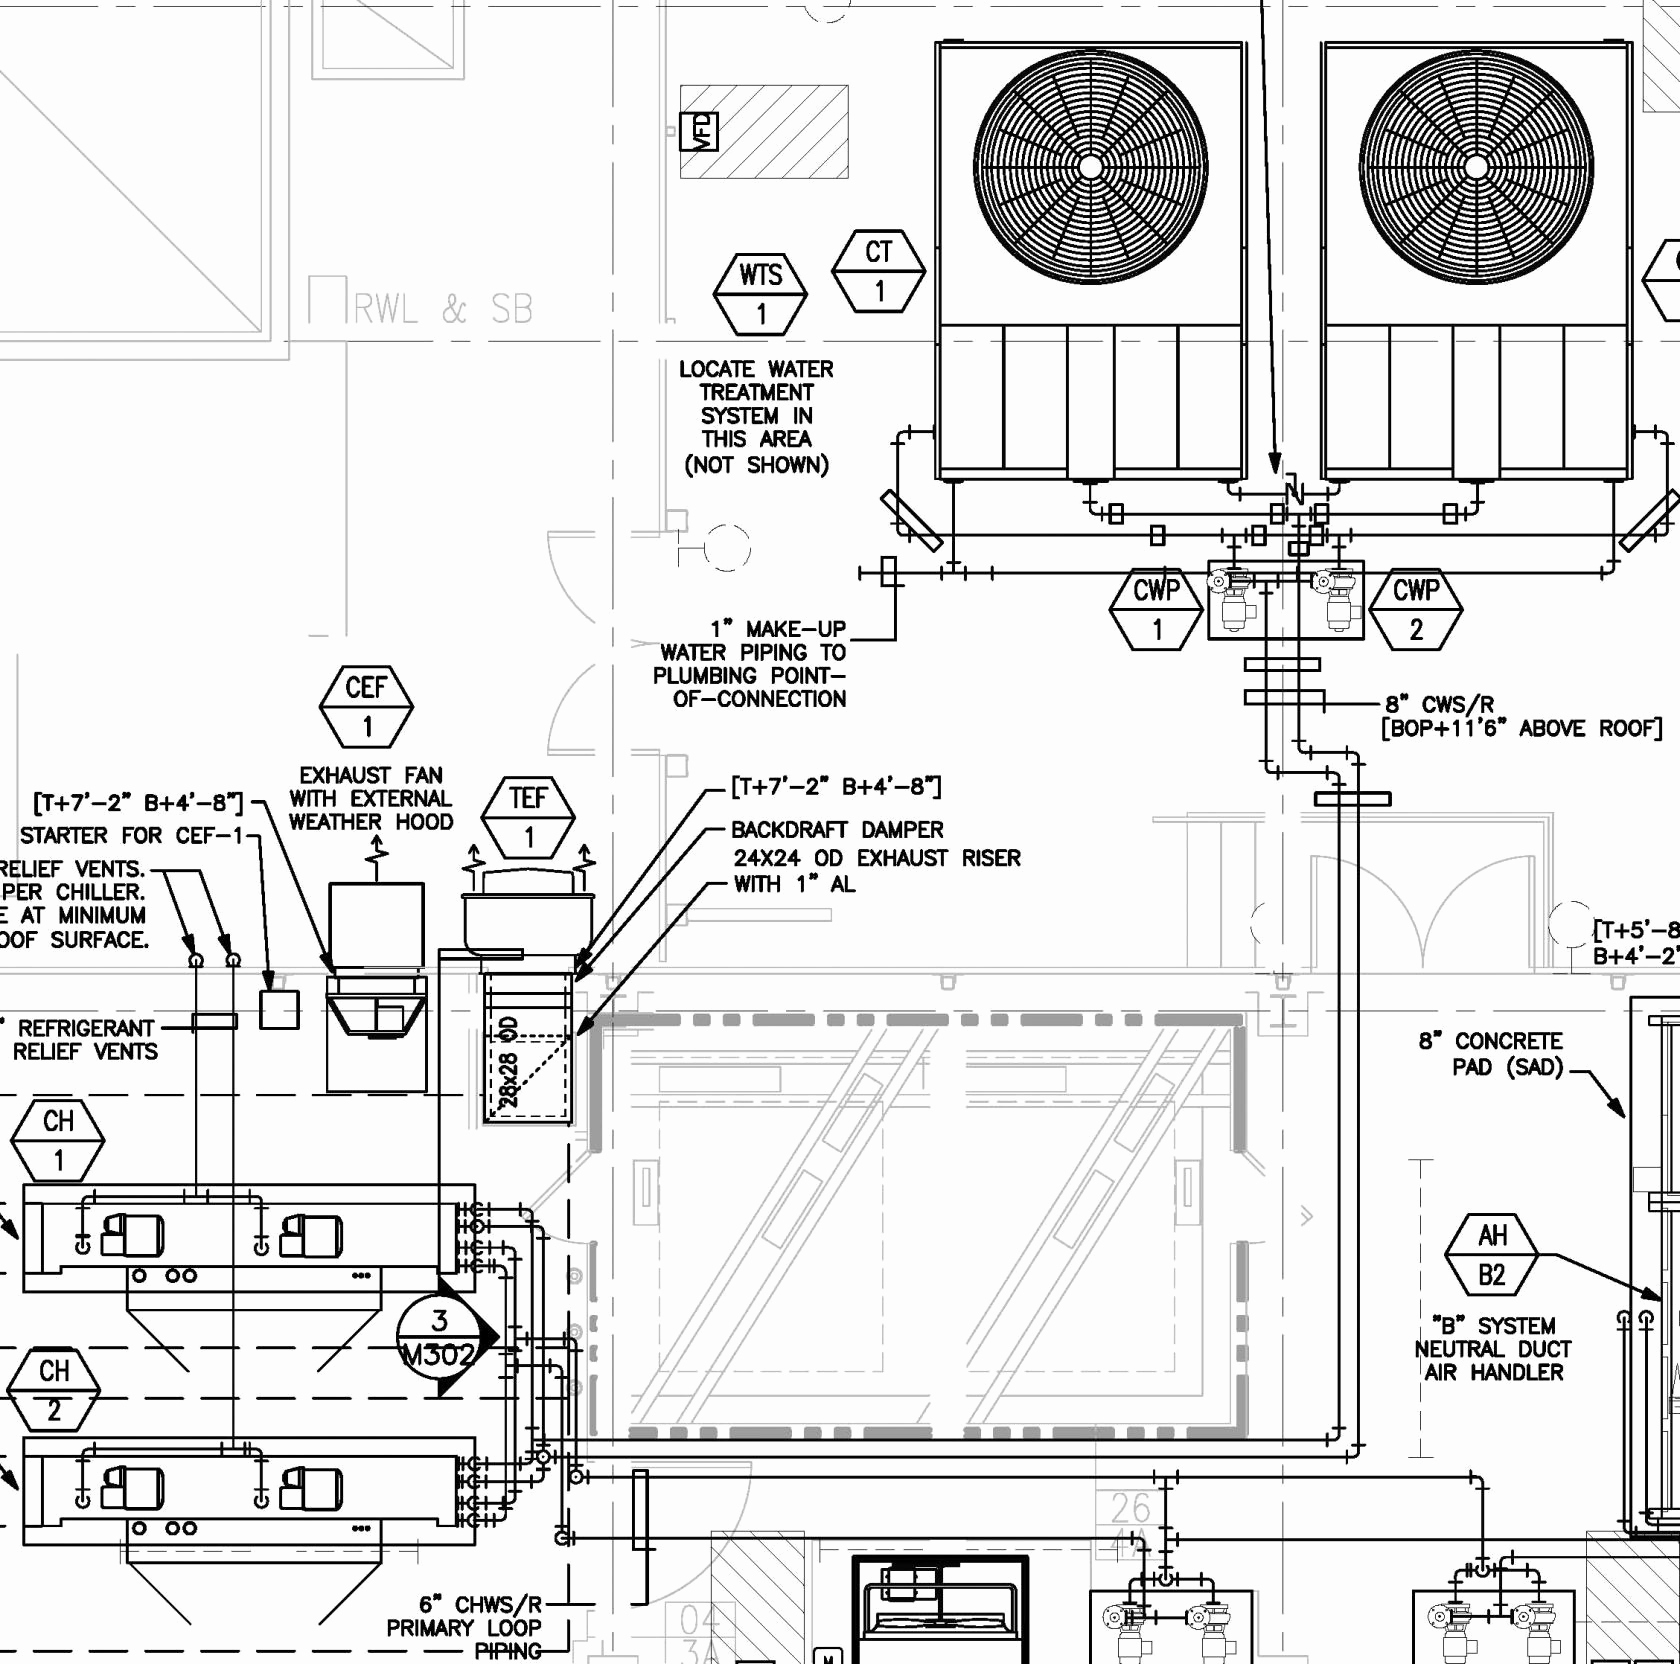 house wiring diagram examples Collection-Swimming Pool Timer Wiring Diagram for Electrical Panel Diagram New Electrical Panel Wiring Diagram Awesome 5-r